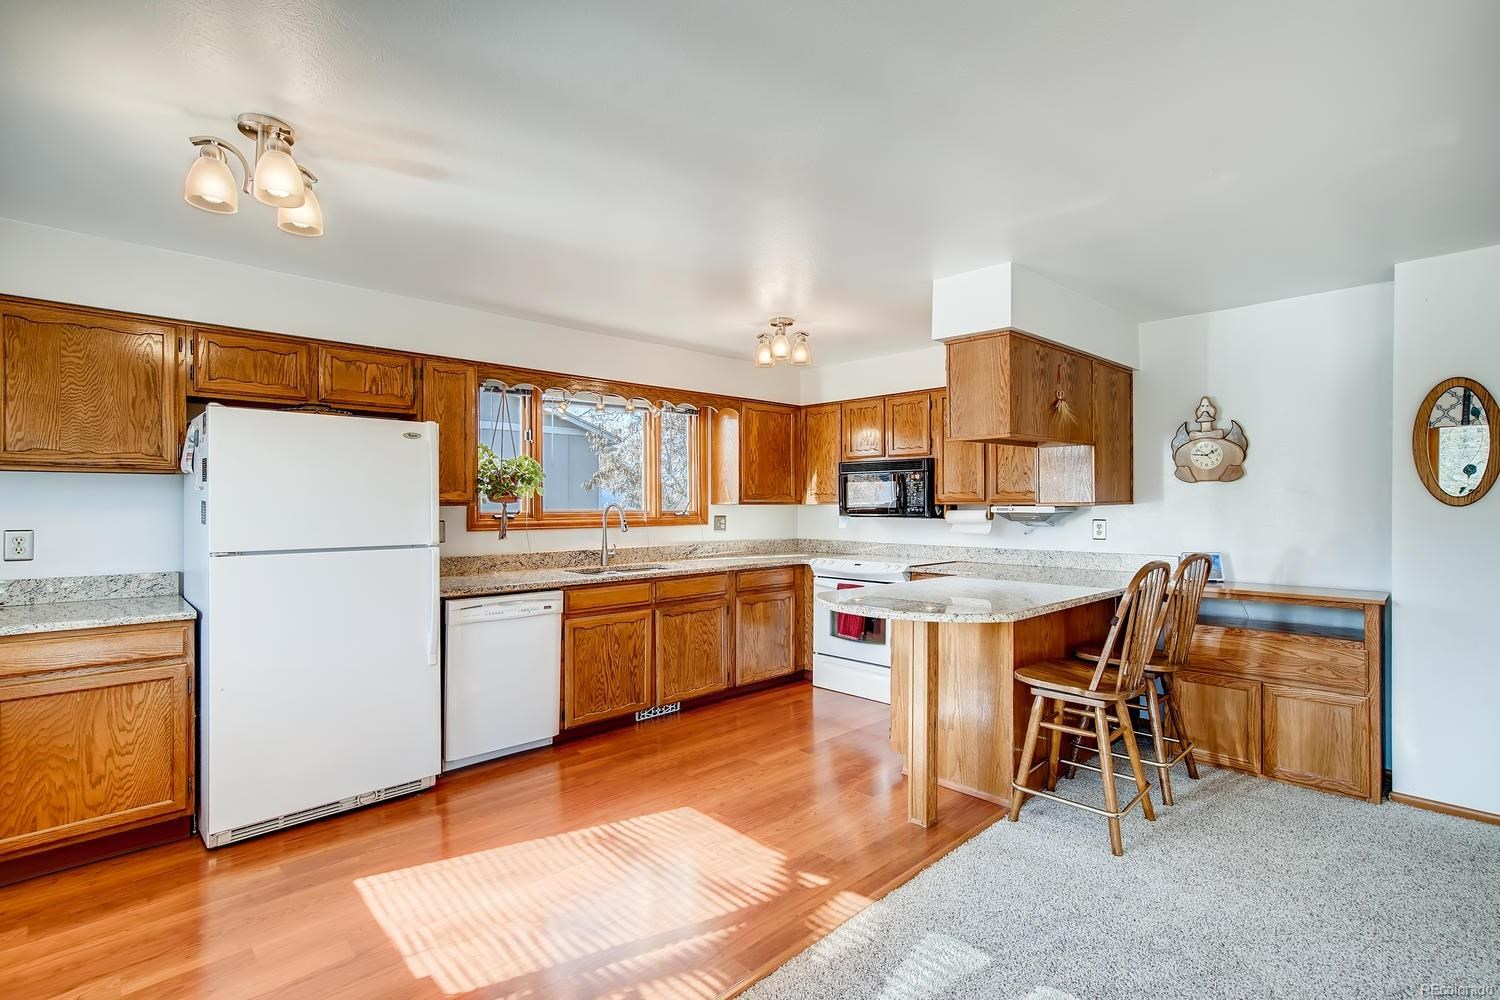 MLS# 2220629 - 8 - 4620 W 108th Place, Westminster, CO 80031